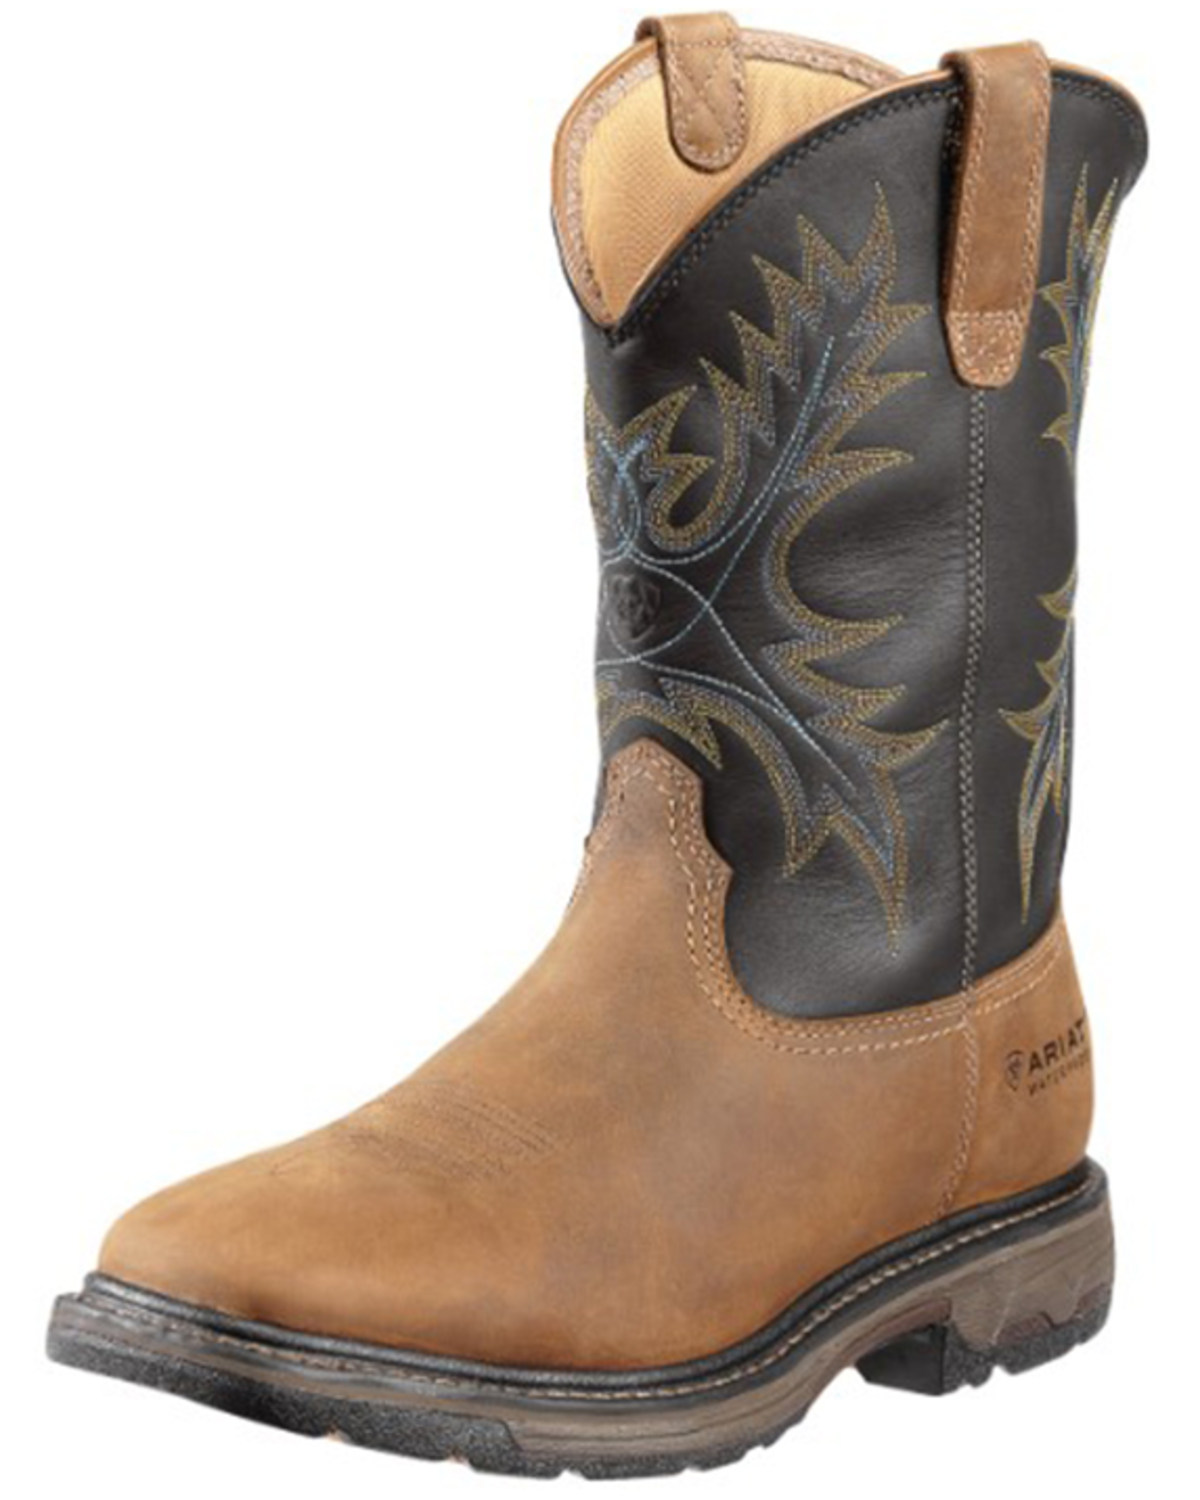 dc5c3686897ae Zoomed Image Ariat Men's Workhog H2O Waterproof Steel Toe Western Work Boots,  Aged Bark, hi-